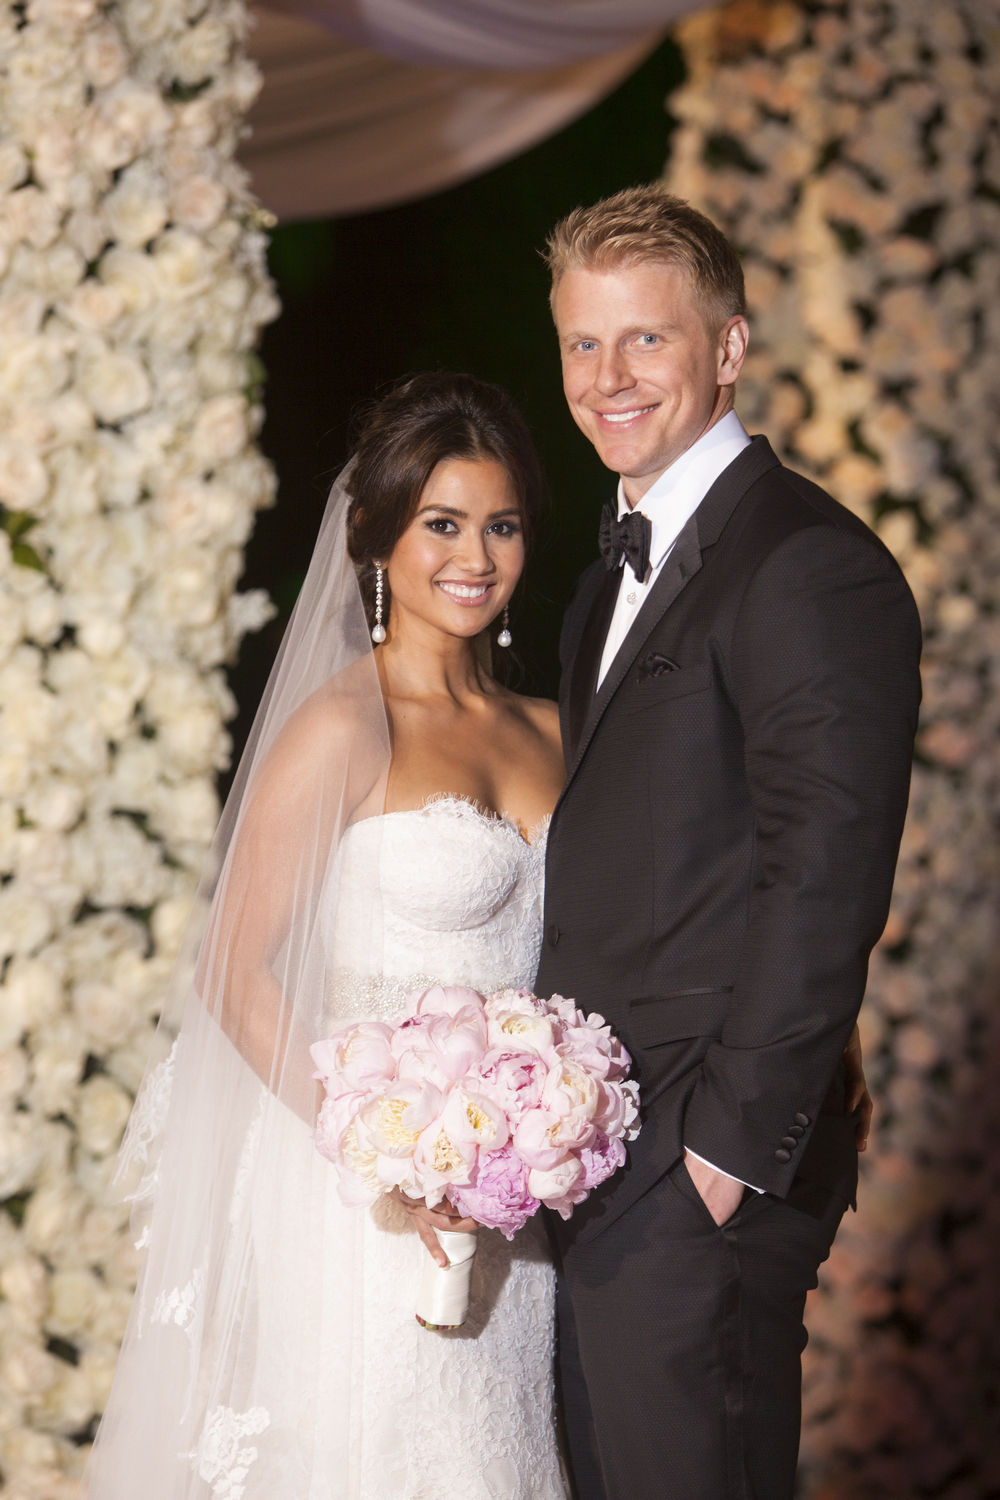 wedding-abc-bachelor-sean-lowe-catherine-guidici-johnandjoseph168.jpg